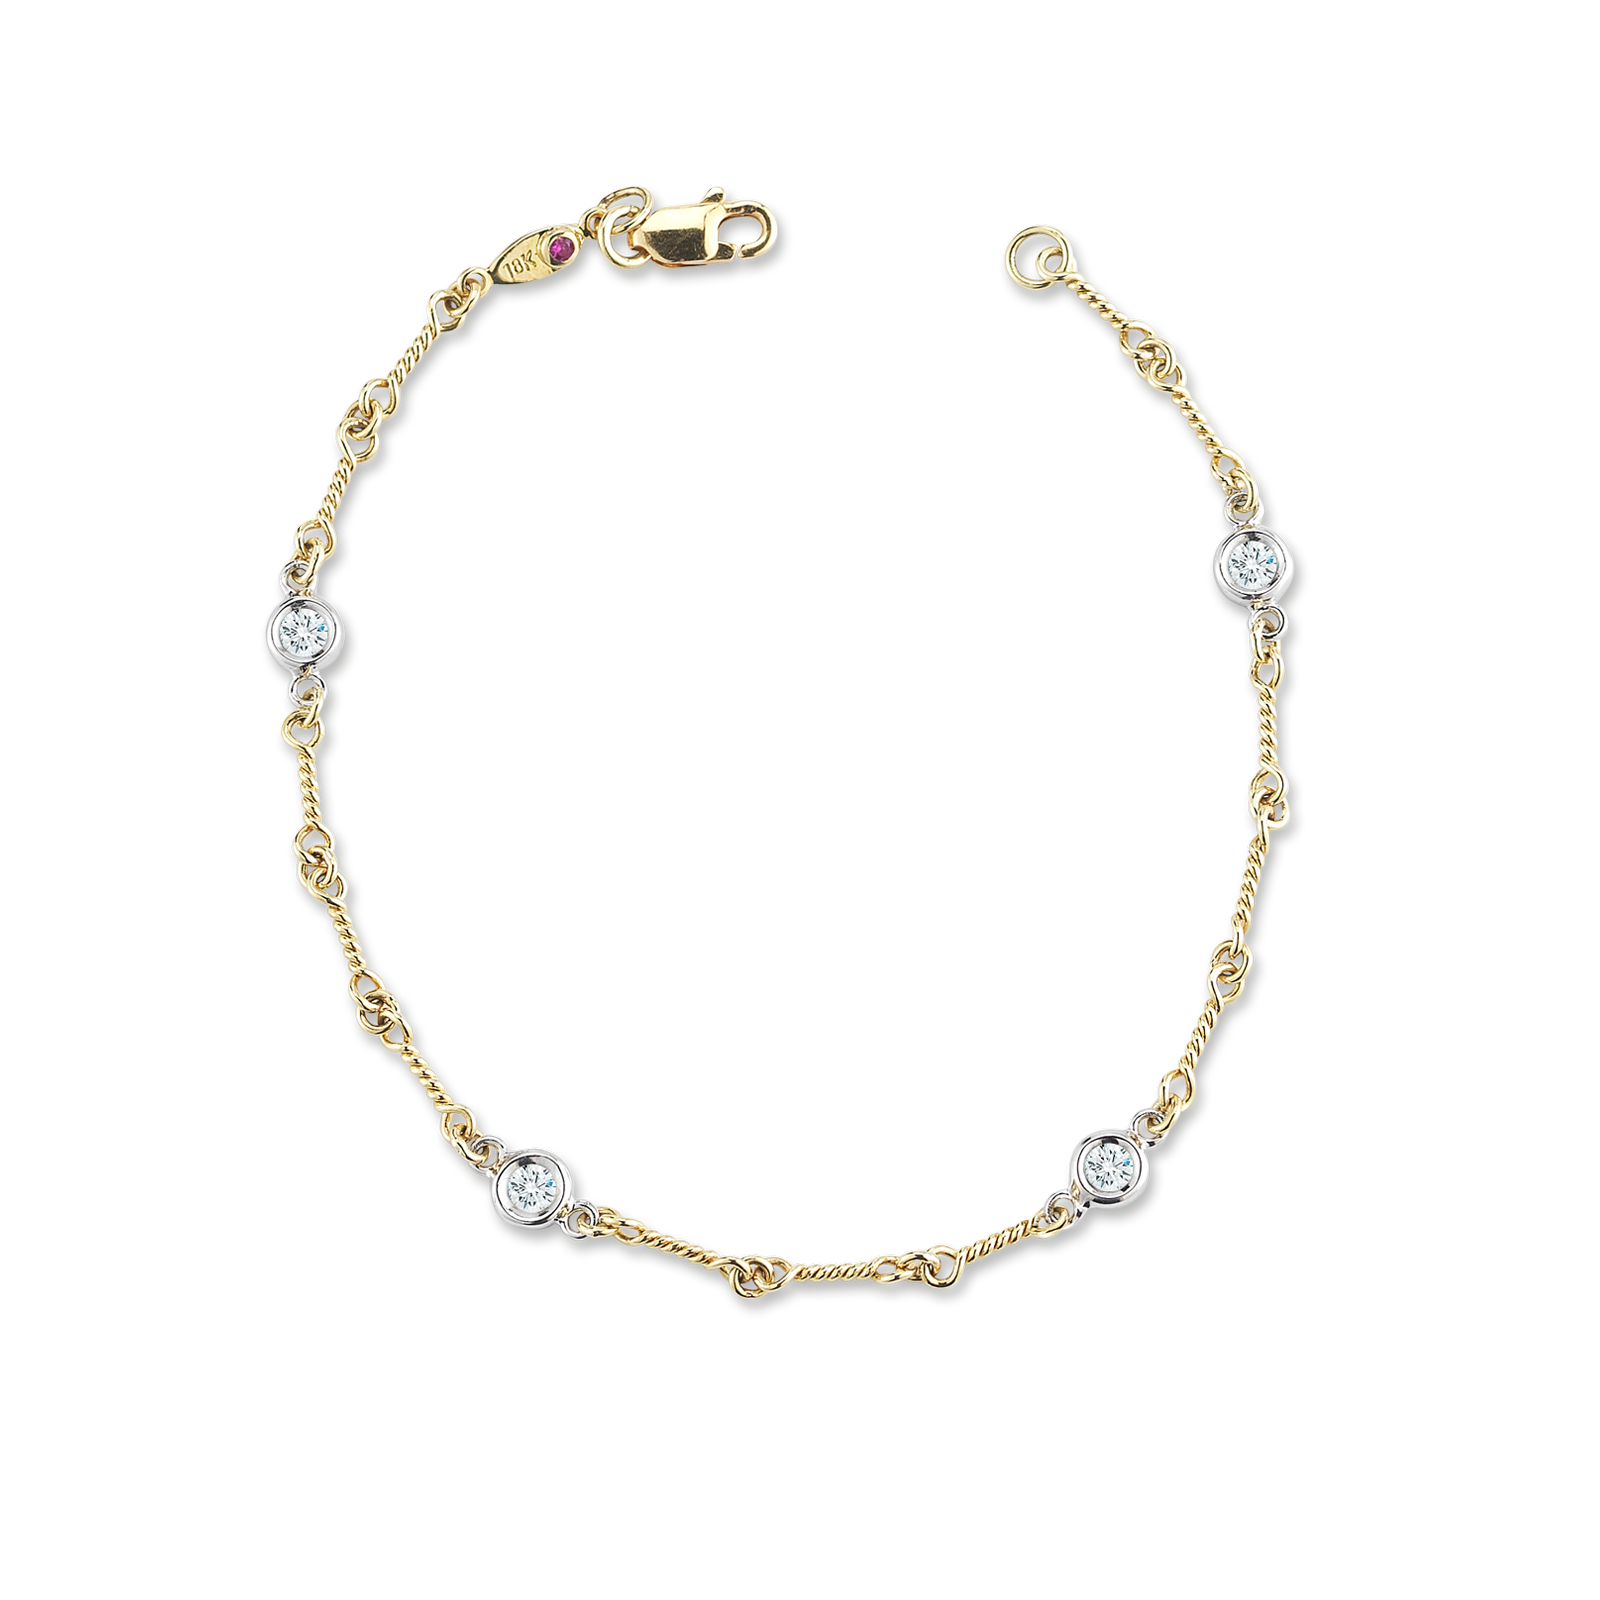 Png gold chain. Dogbone bracelet with diamond